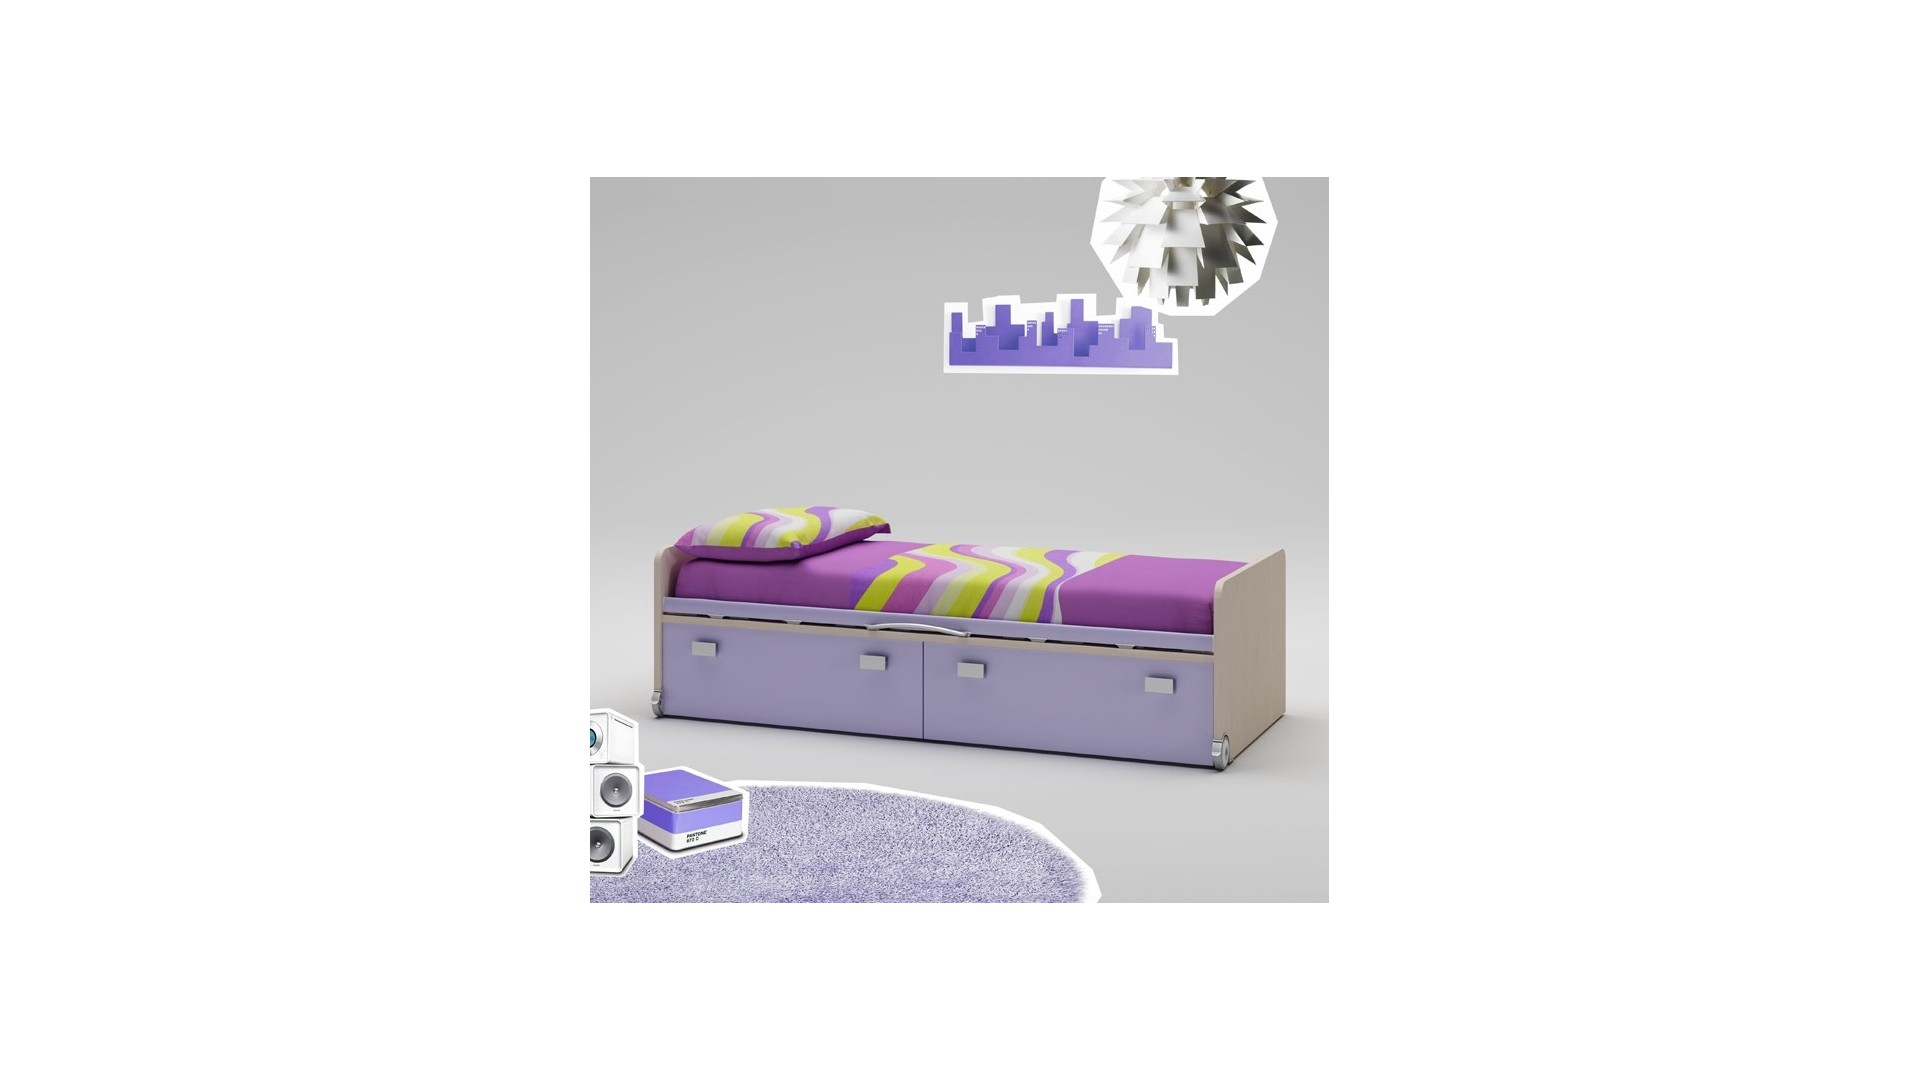 lit enfant avec 2 grands coffres profonds moretti. Black Bedroom Furniture Sets. Home Design Ideas